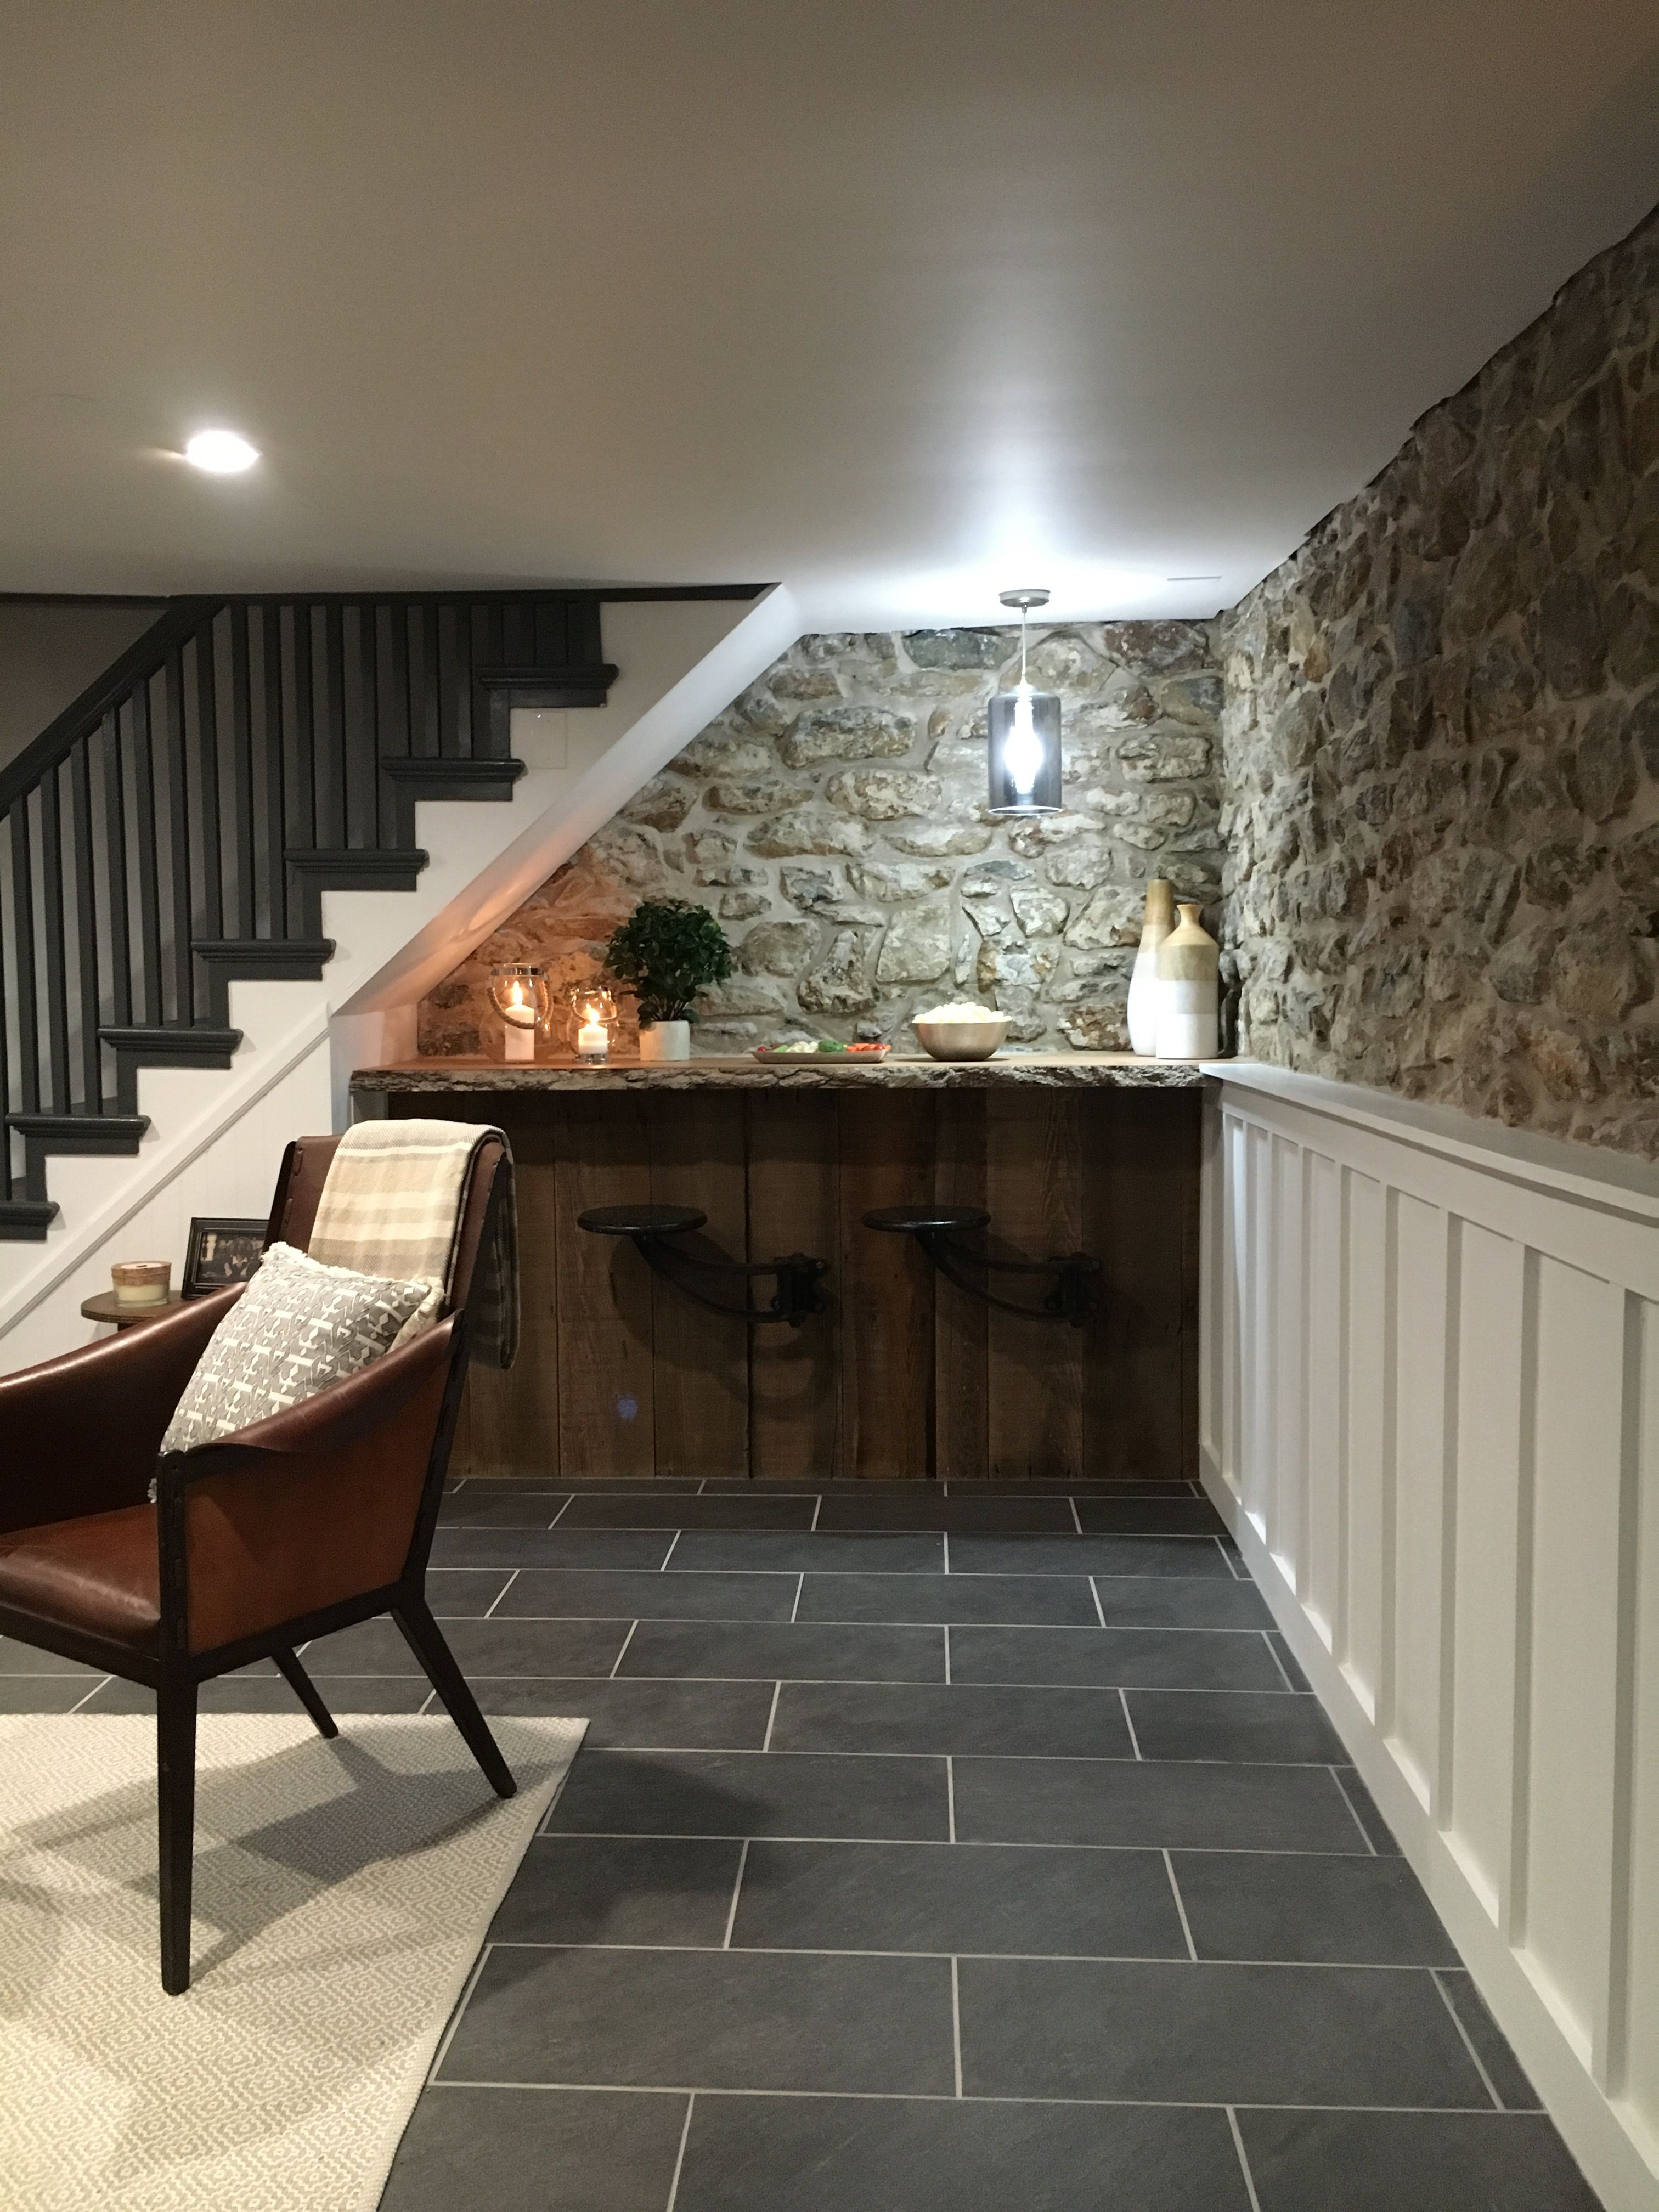 Grungy 1700s Basement Turned Bar / Hangout Space. Stone House Revival - Season One.